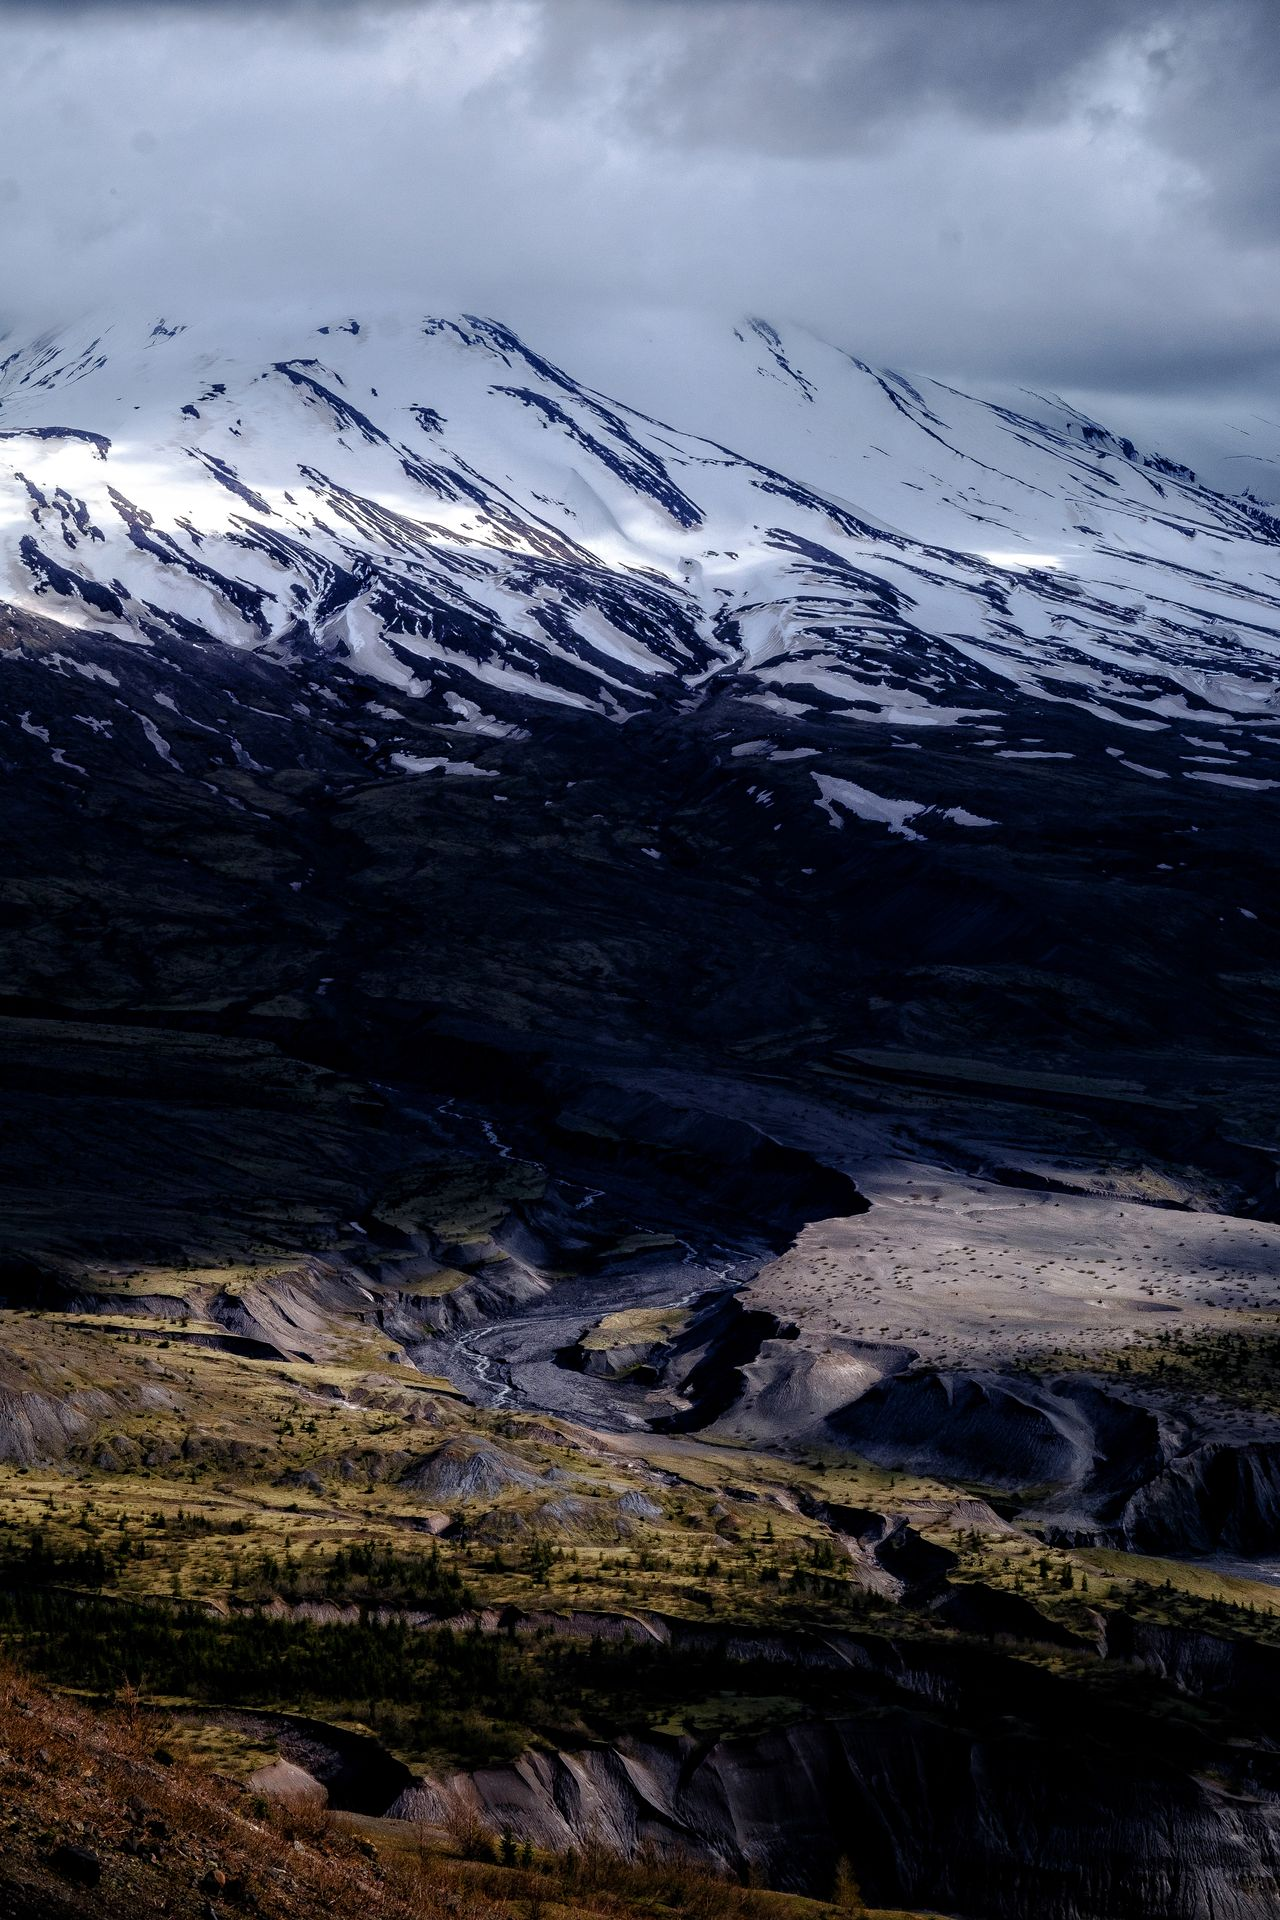 Caldera Nature Beauty In Nature Snow Cold Temperature Cloud - Sky No People Winter Scenics Mountain Outdoors Sky Day Tranquility Mt St Helens Volcanic Landscape Power In Nature Volcano Tranquil Scene Travel Destinations Moody The Great Outdoors - 2017 EyeEm Awards Shadows